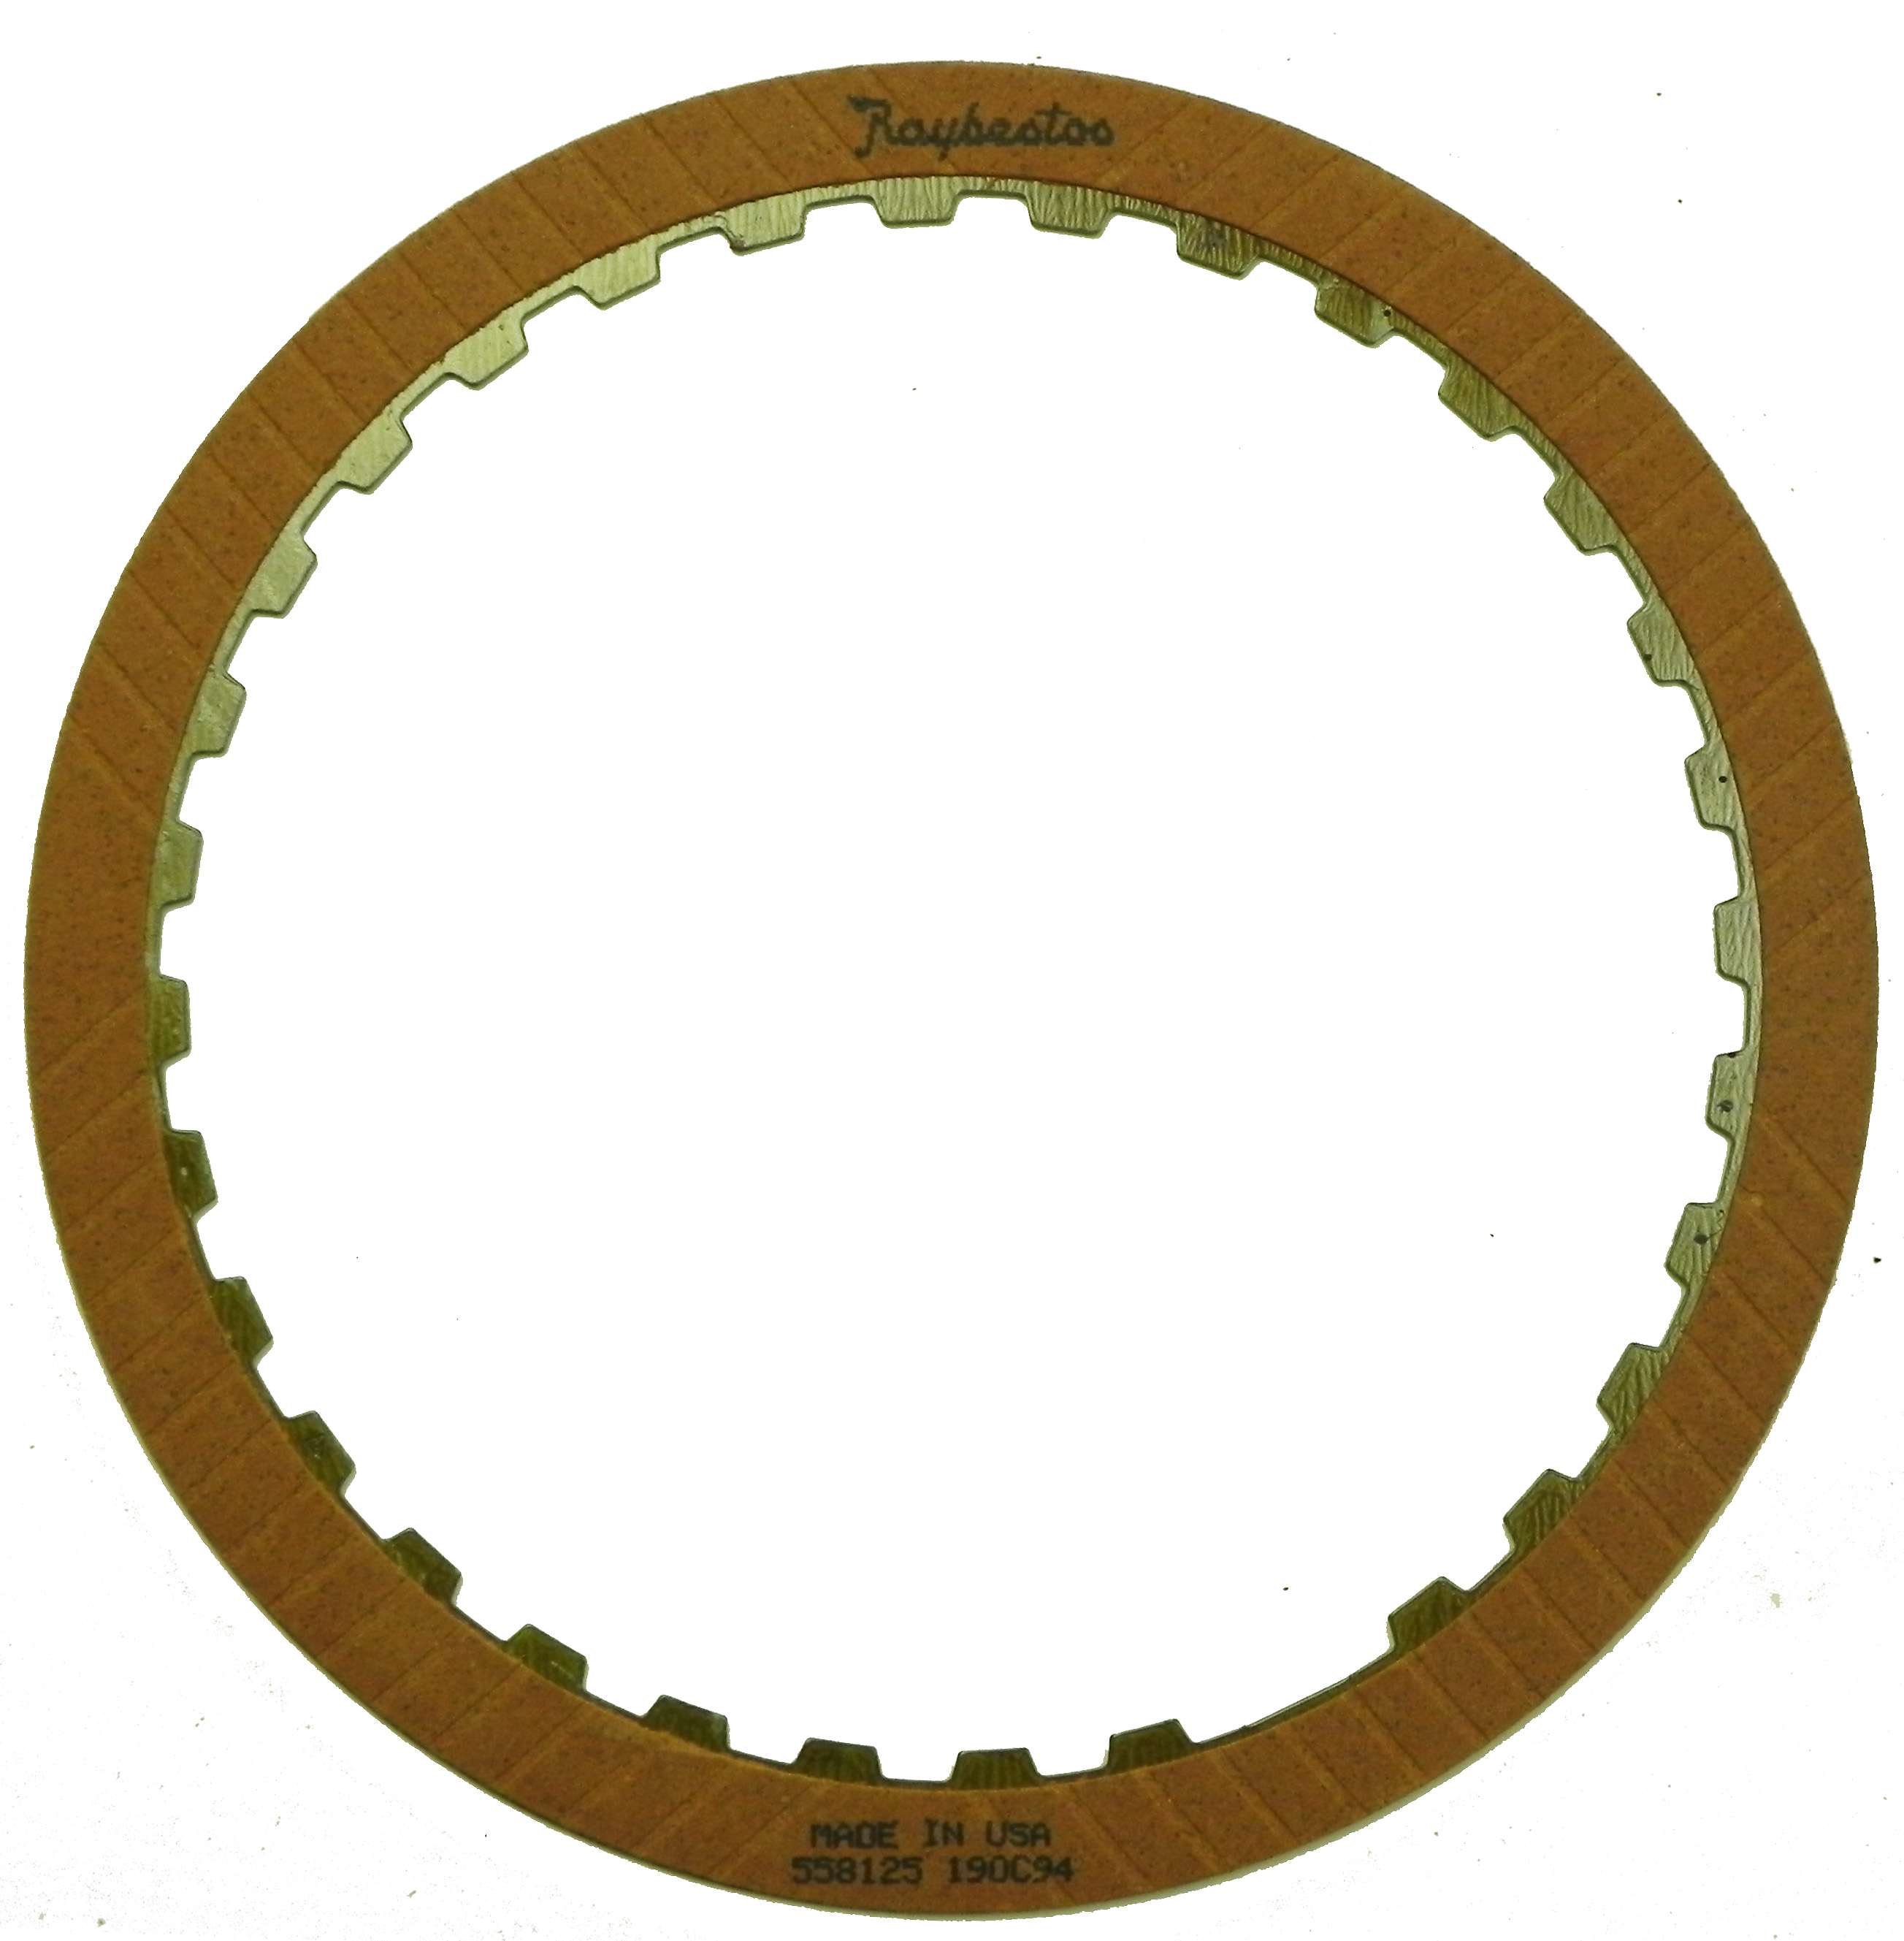 R558125 | 1988-1991 Friction Clutch Plate OE Replacement 2nd, 4th, 1st Design